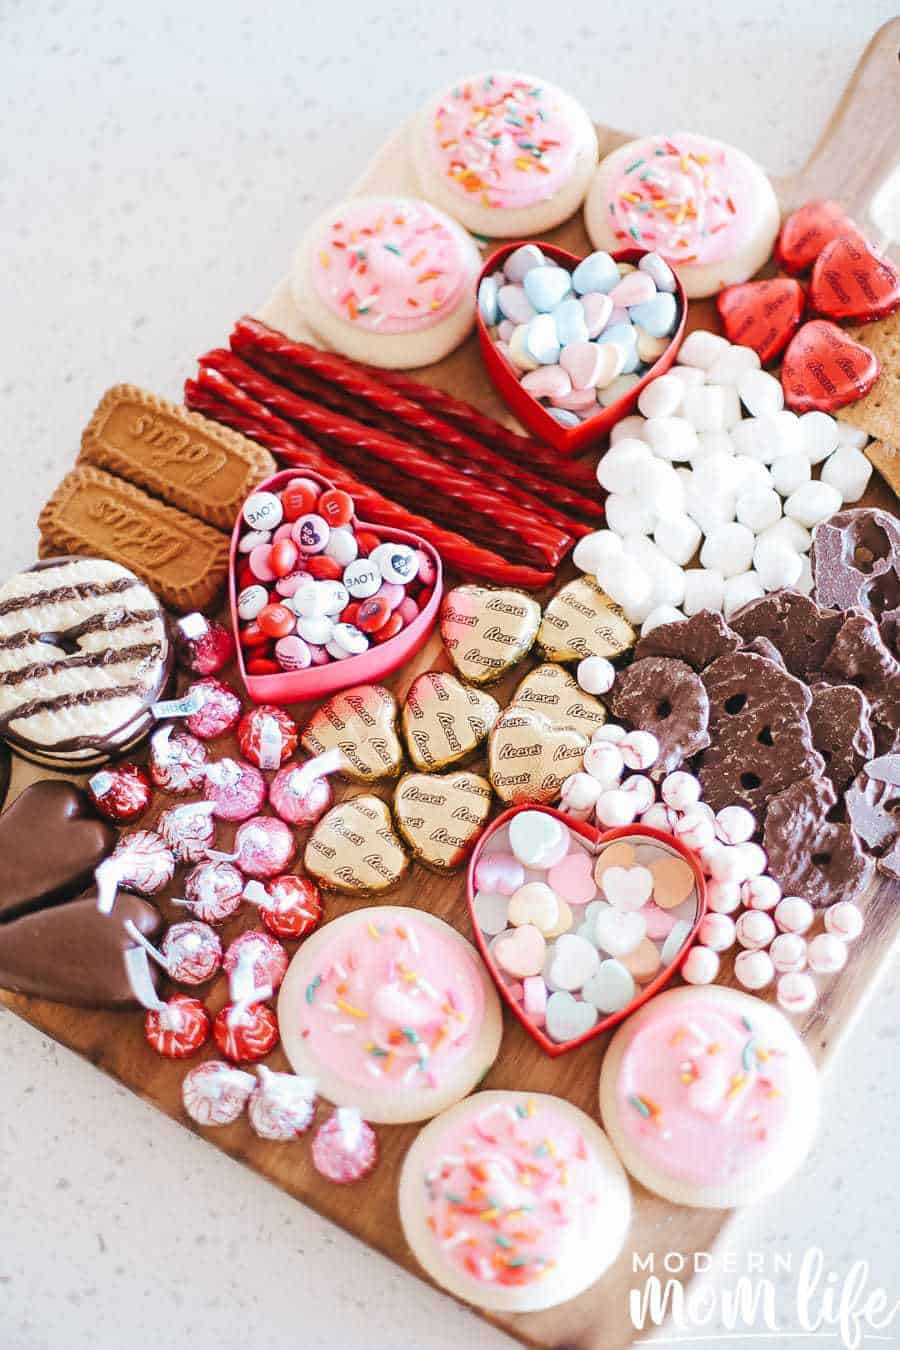 Dessert board filled with Valentines candies, cookies, and chocolates.